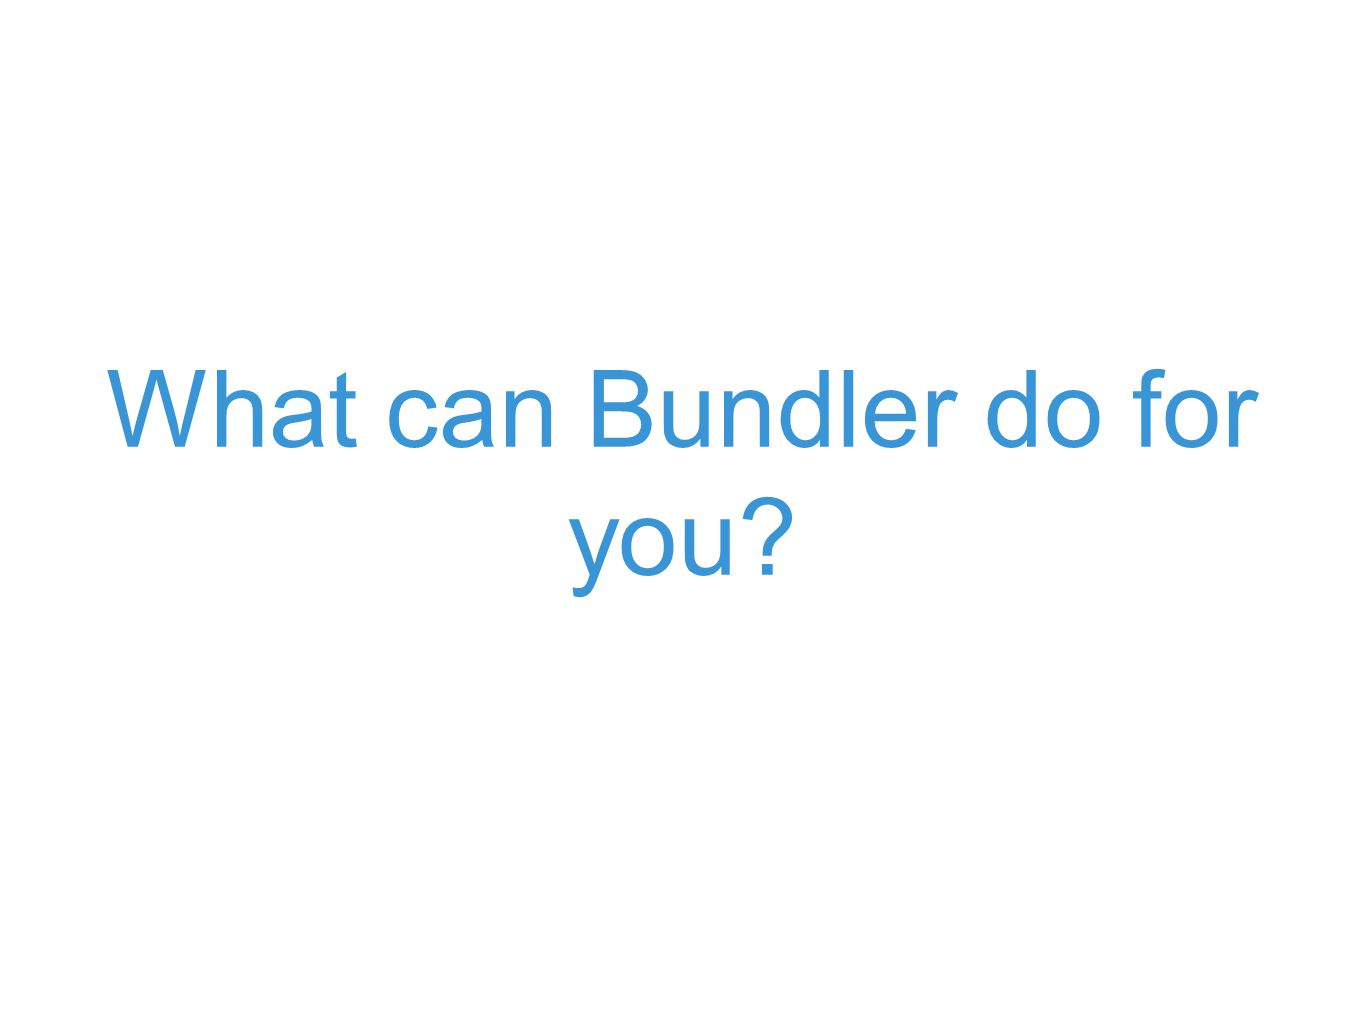 What can Bundler do for you